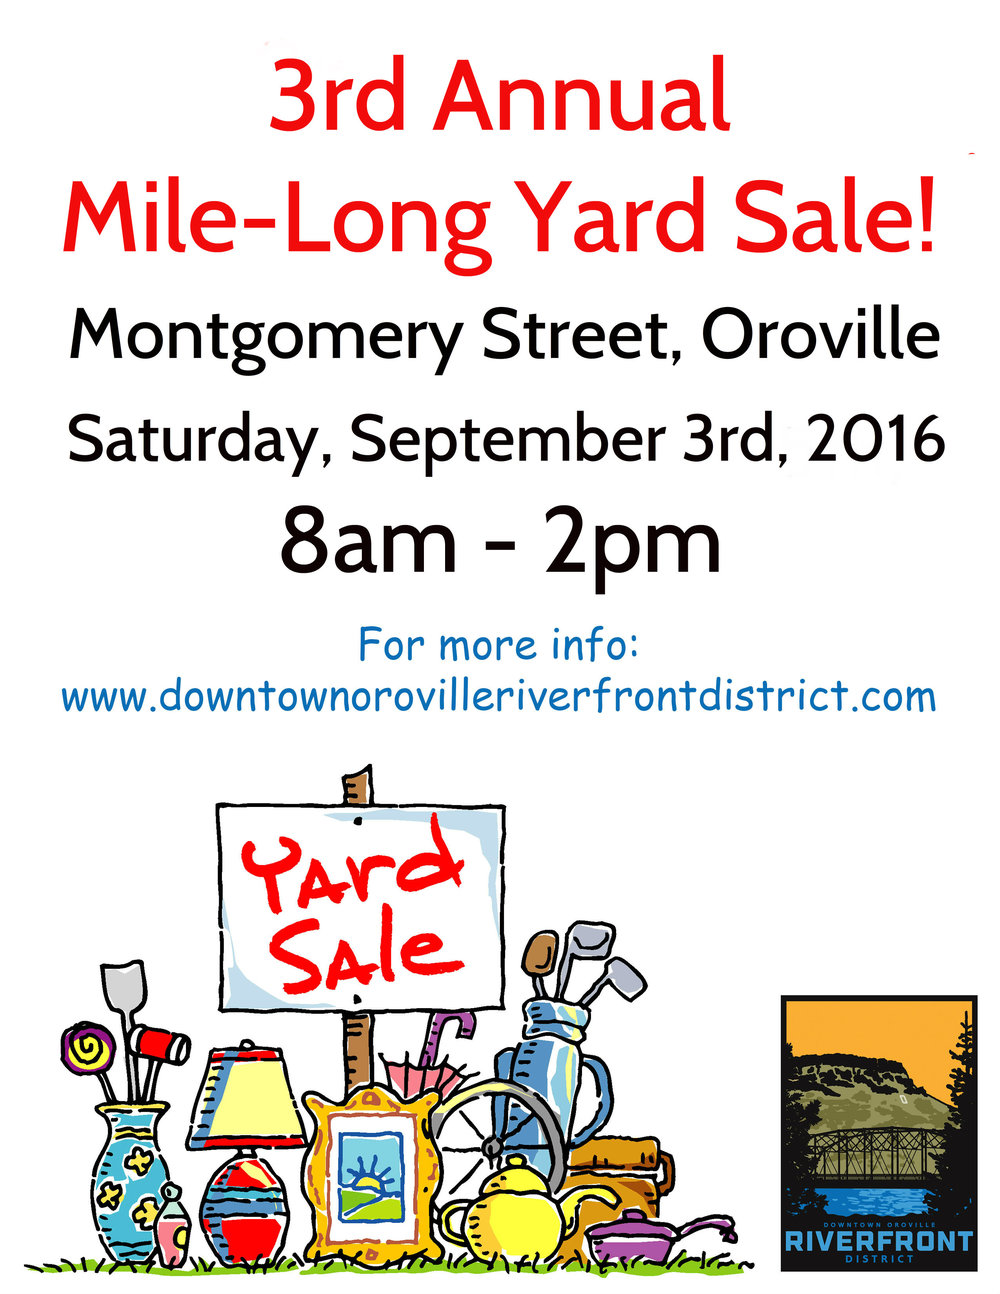 Mark your calendars! The Annual-Mile Long Yard Sale is almost here! Save up those extra dollars and catch these bargains! It isn't late too sign up to participate, email riverfrontdistrict@gmail.com. See you all there!